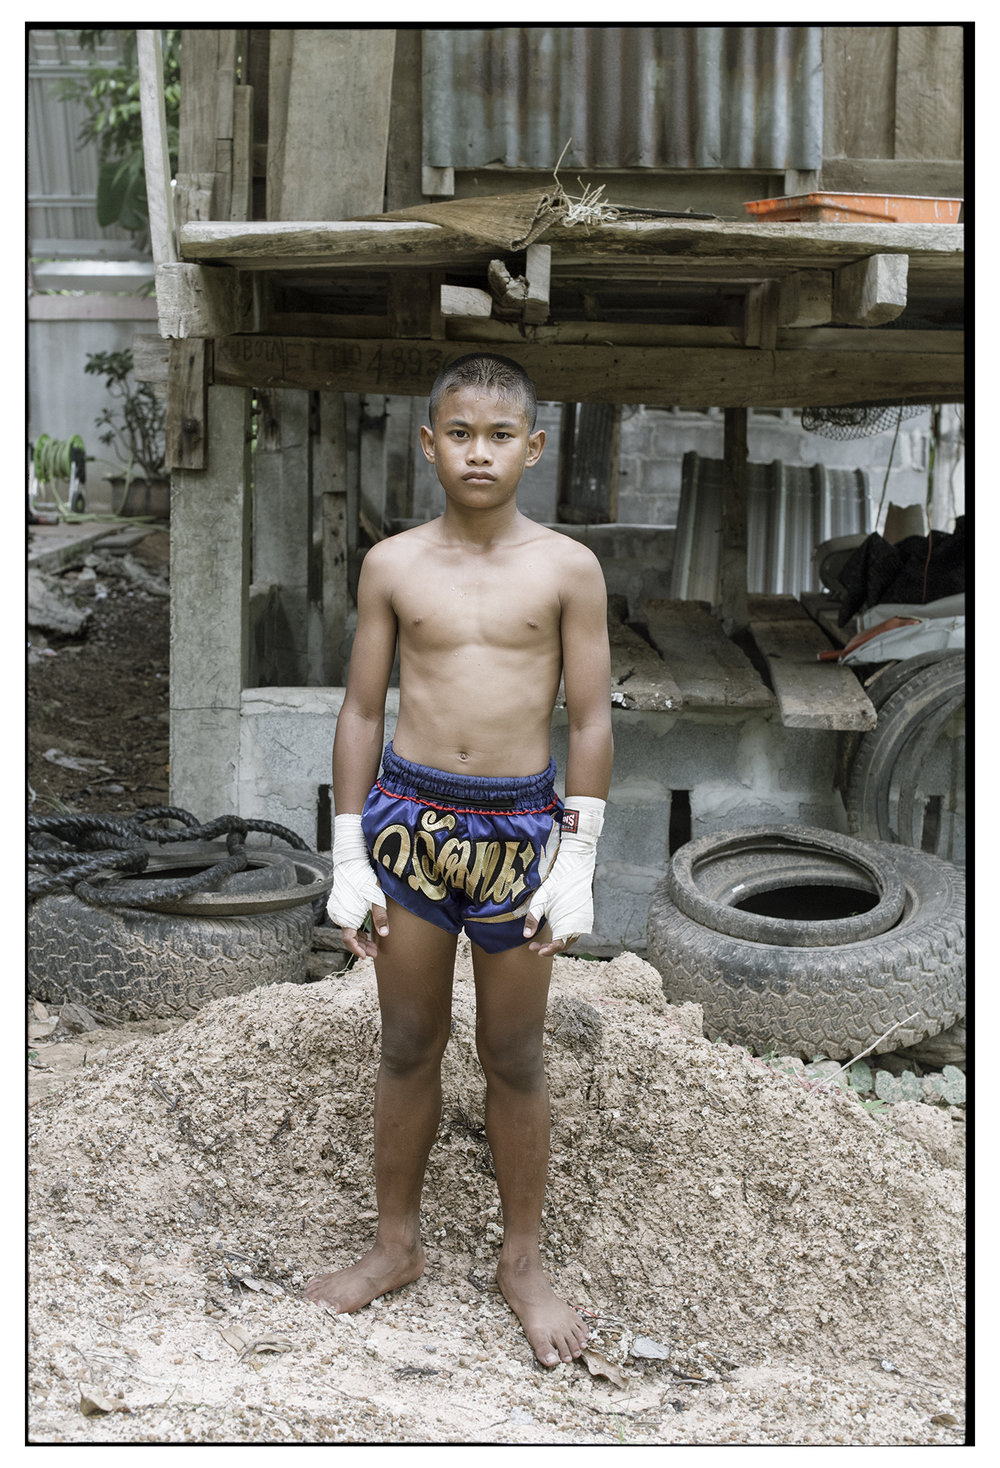 Name: Dee Age: 12 Born: Nakhonratchasima Province Dee lives with his grandma as his mother works as menial labour in the city. He's only just started out his career as a fighter but hopes to fight on TV.